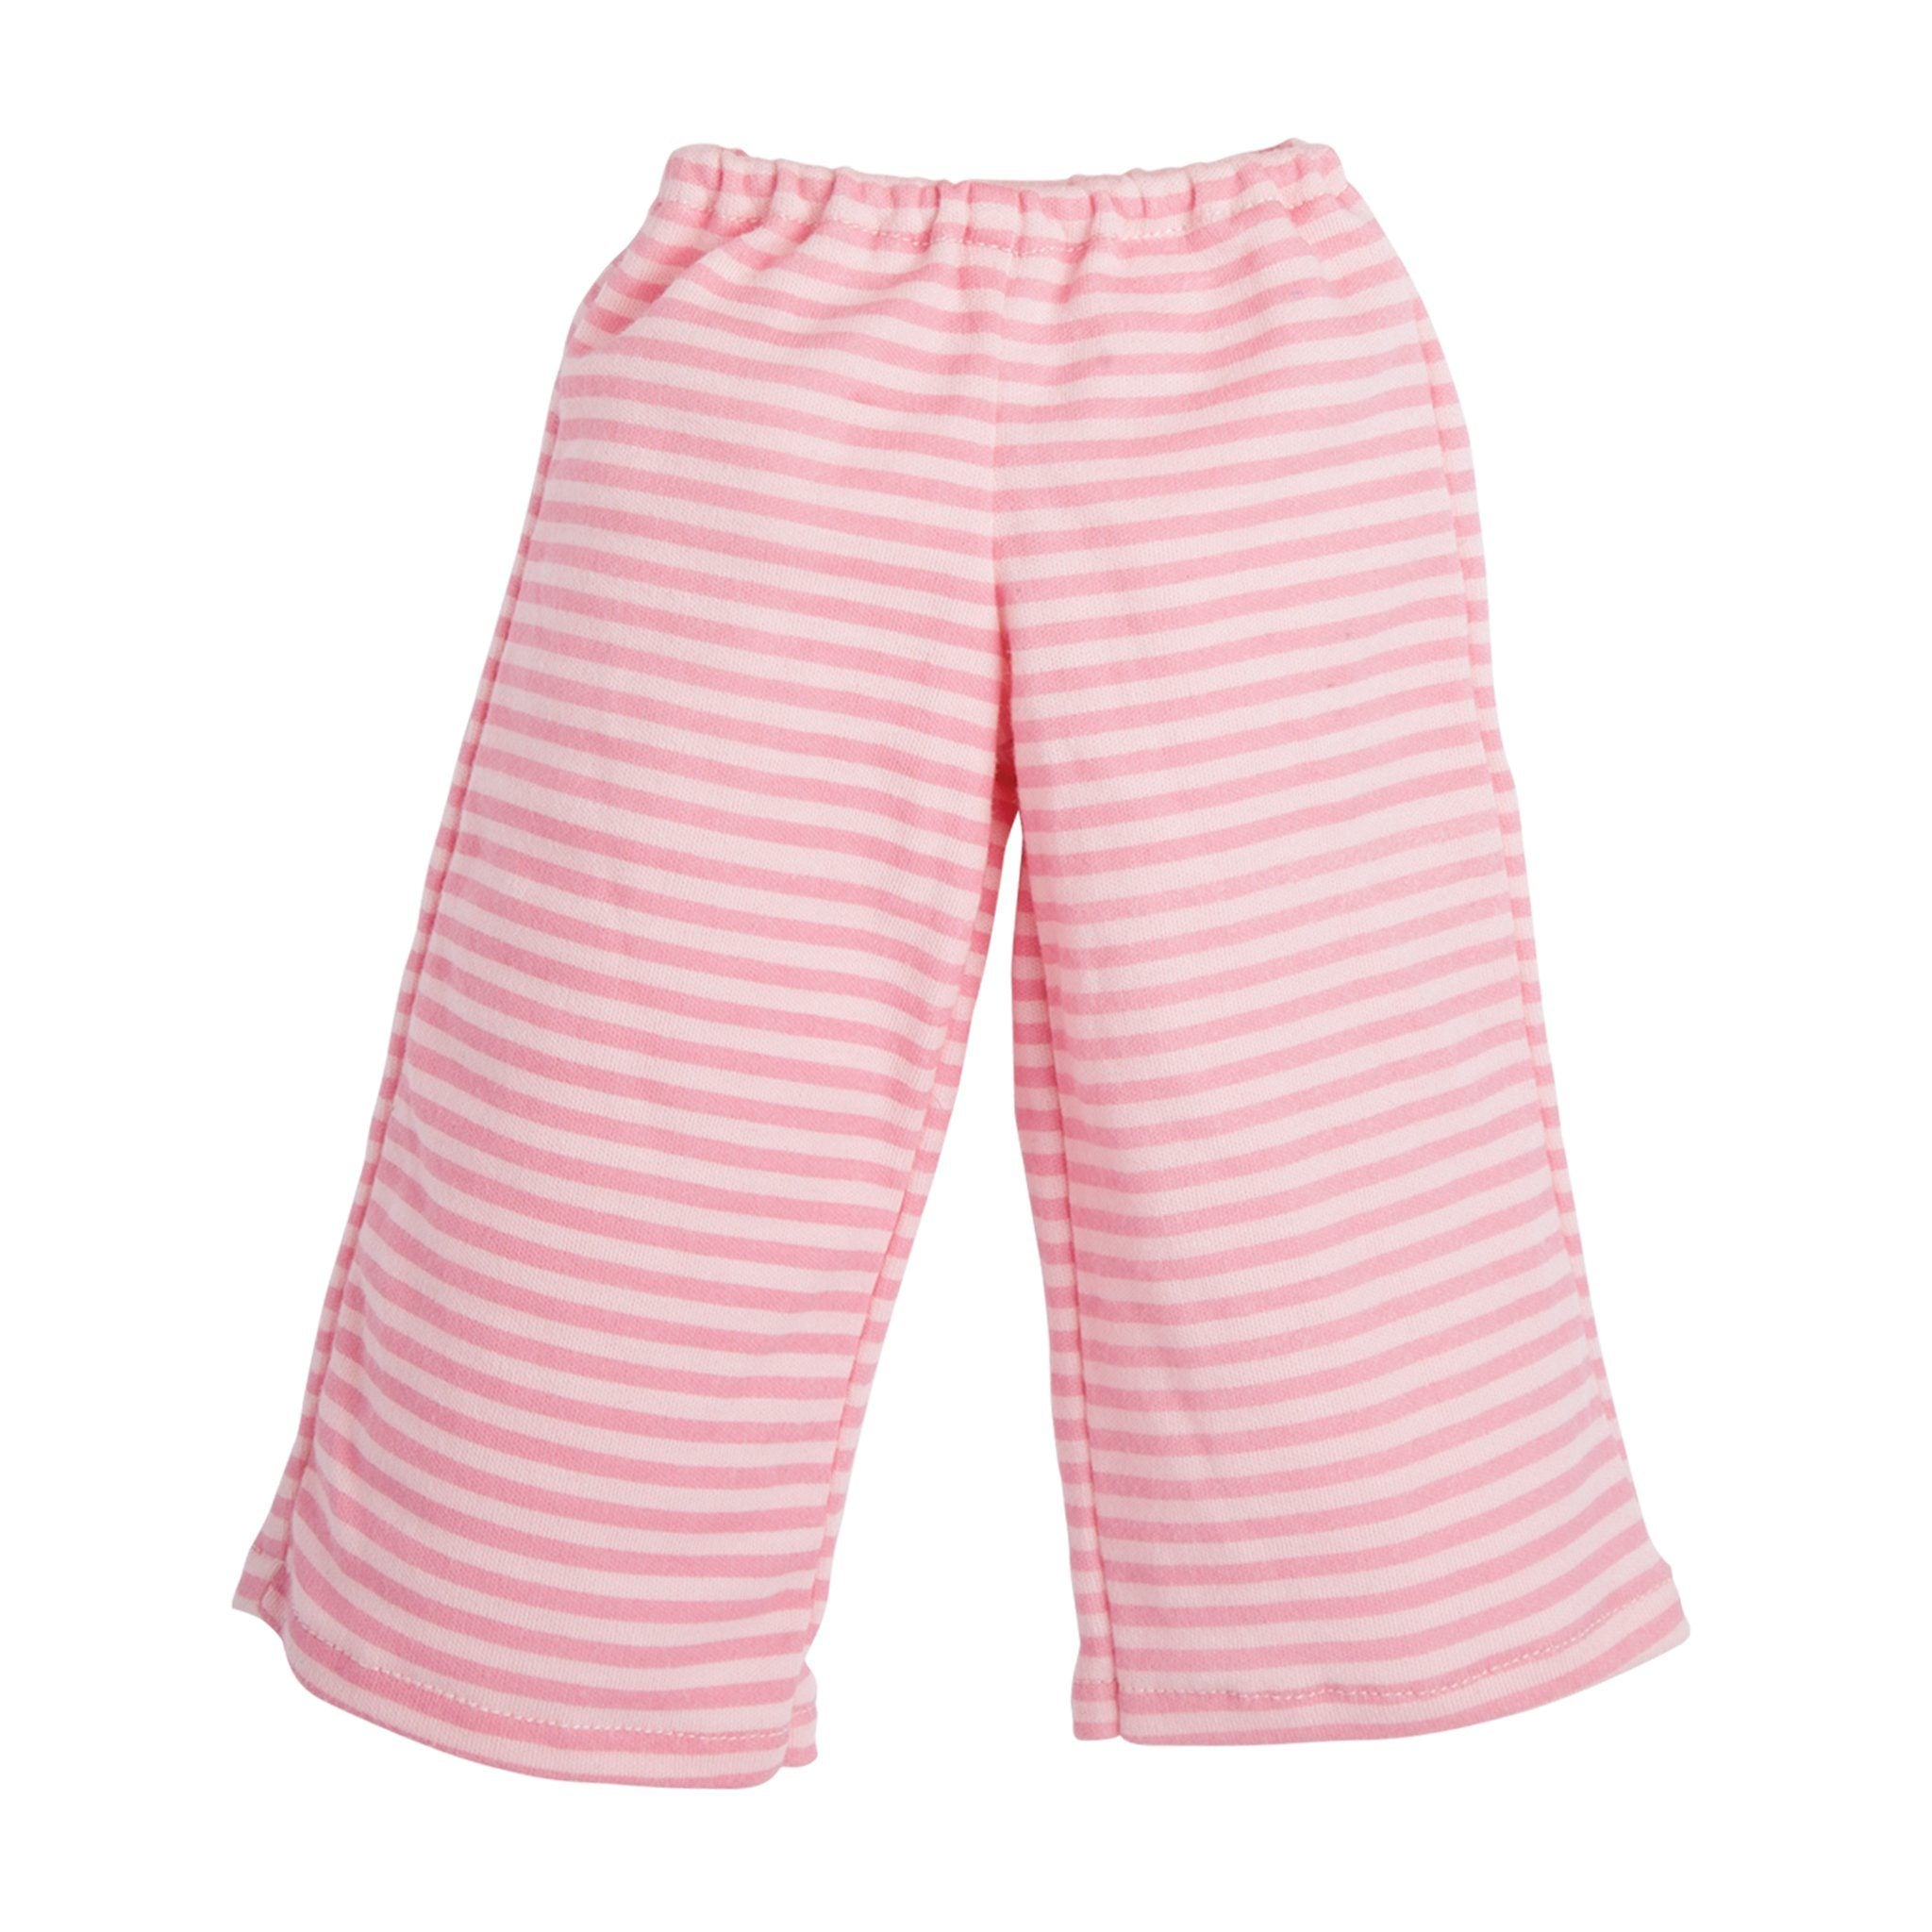 Perfectly Pink Pyjamas striped pink PJ pants fits all Maplelea dolls.